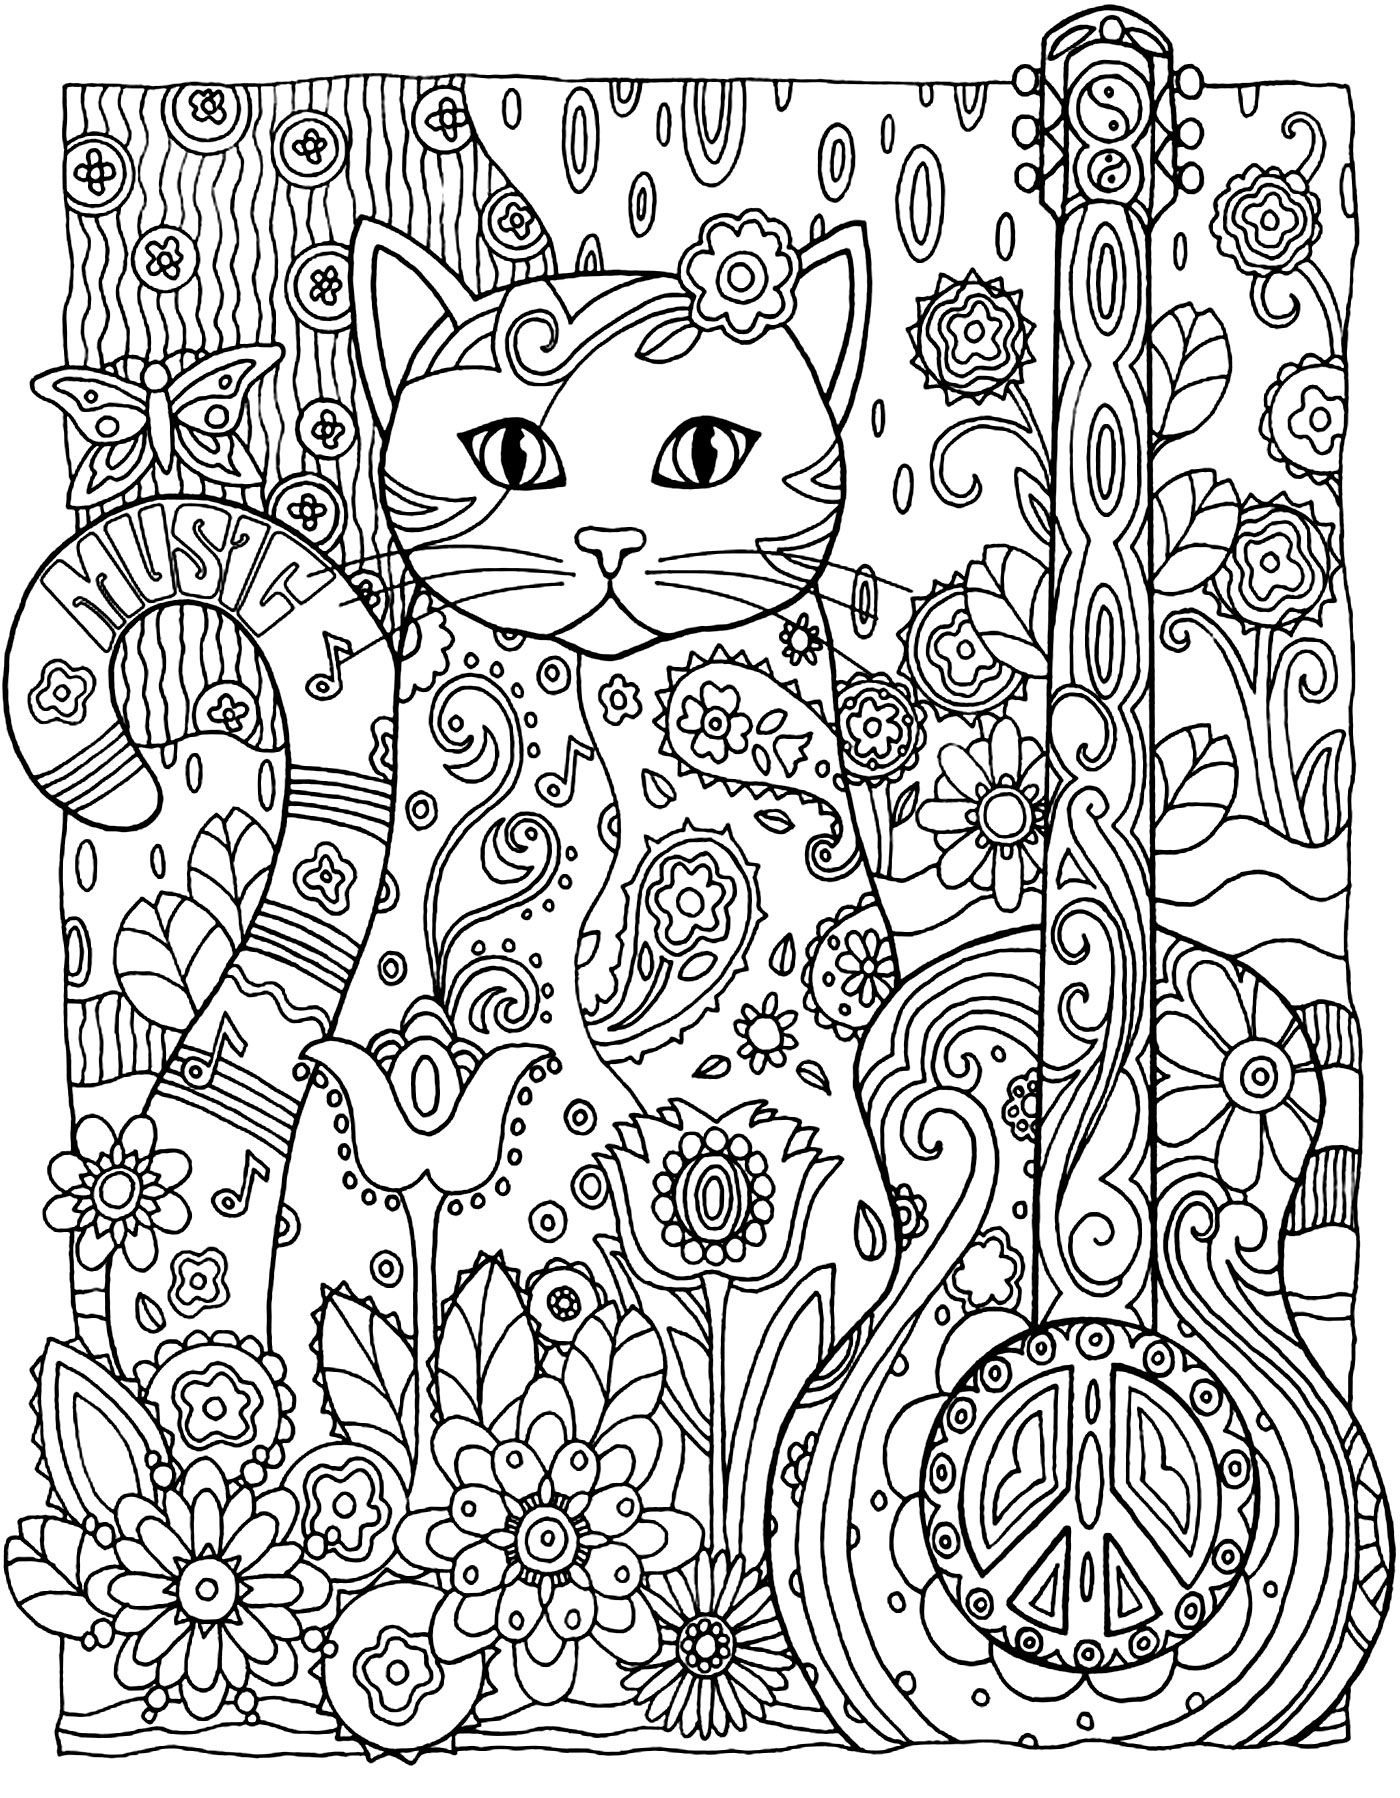 Galerie de coloriages gratuits coloriage adulte animaux chat guitare Un chat